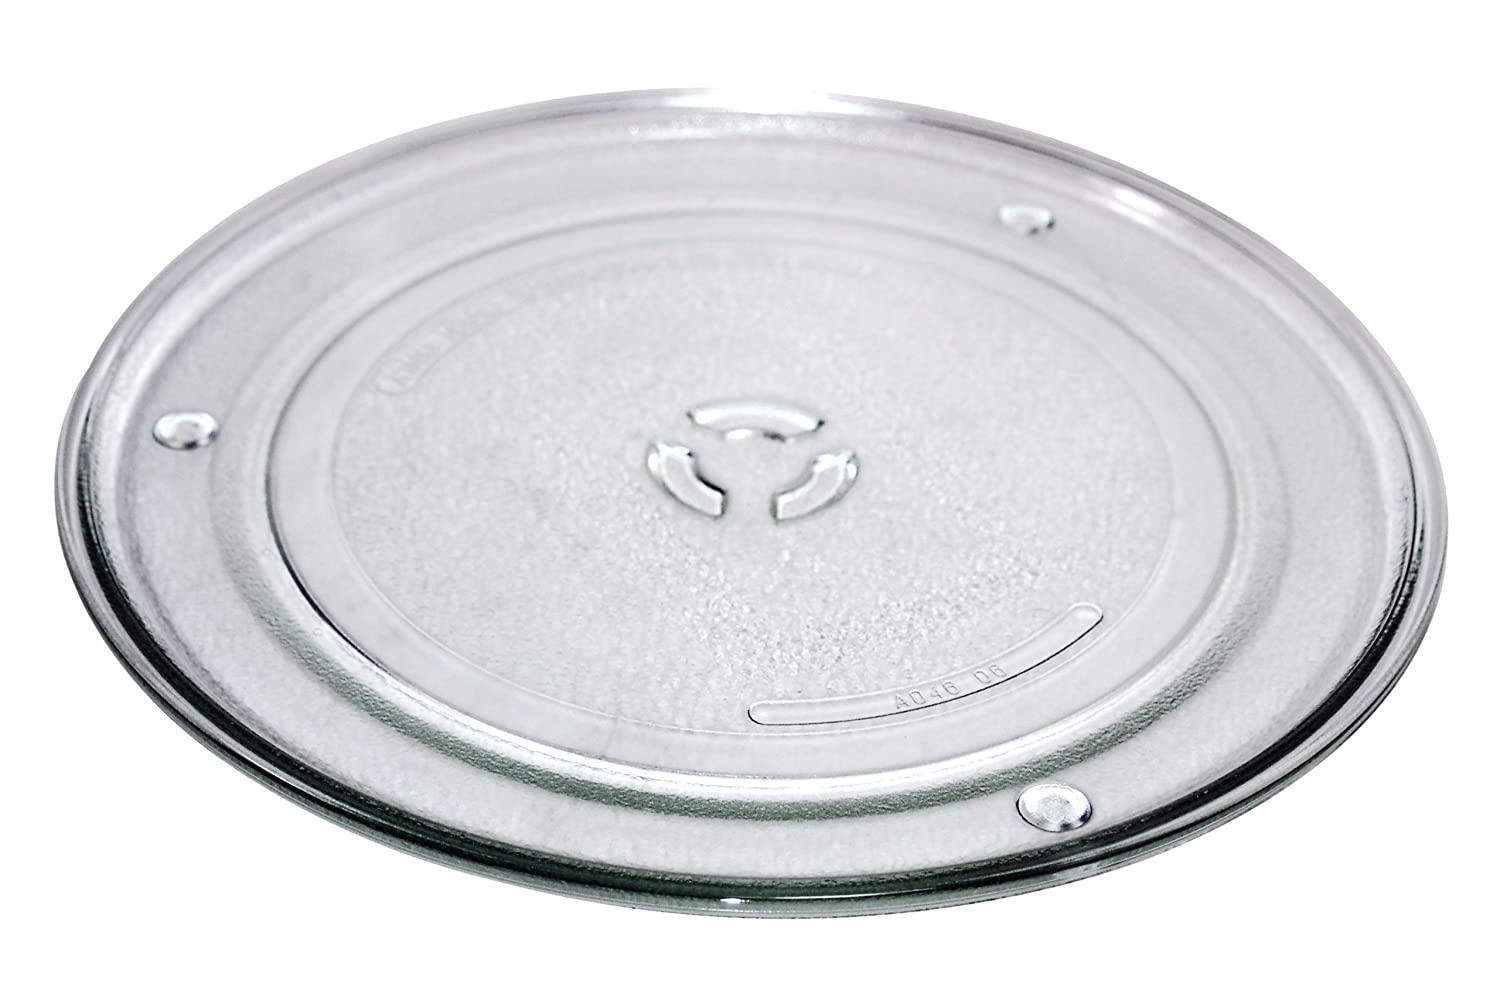 AEG Electrolux Zanussi Microwave Turntable - 325Mm. Genuine Part Number 50280600003